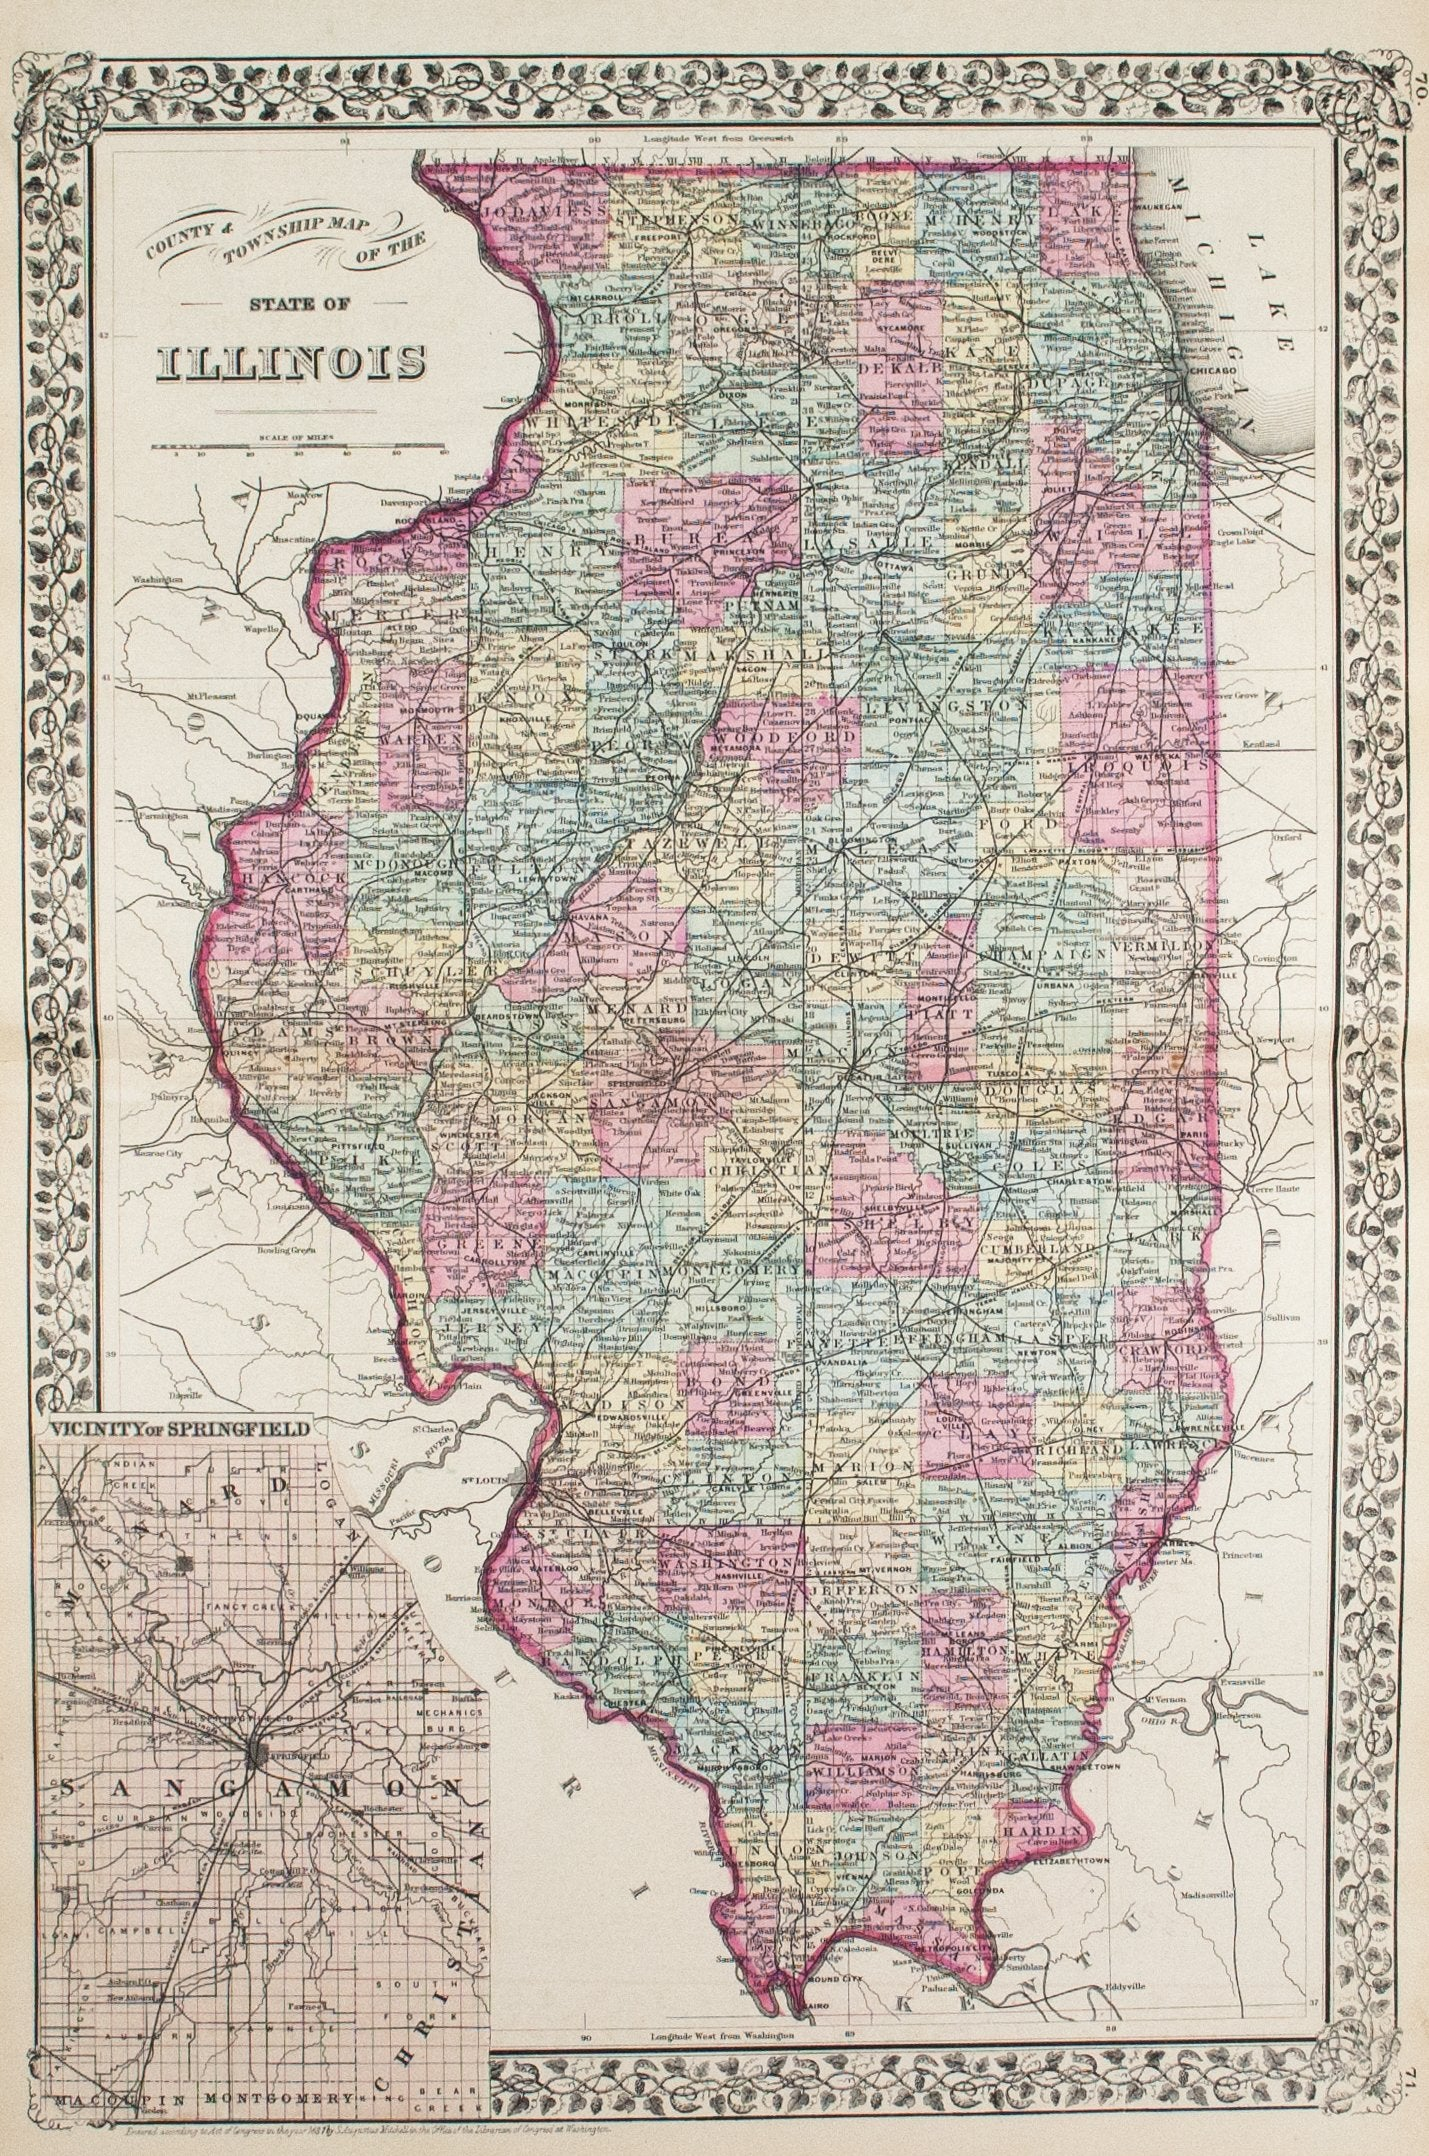 1881 County and Township Map of the State of Illinois - S Mitc ... on